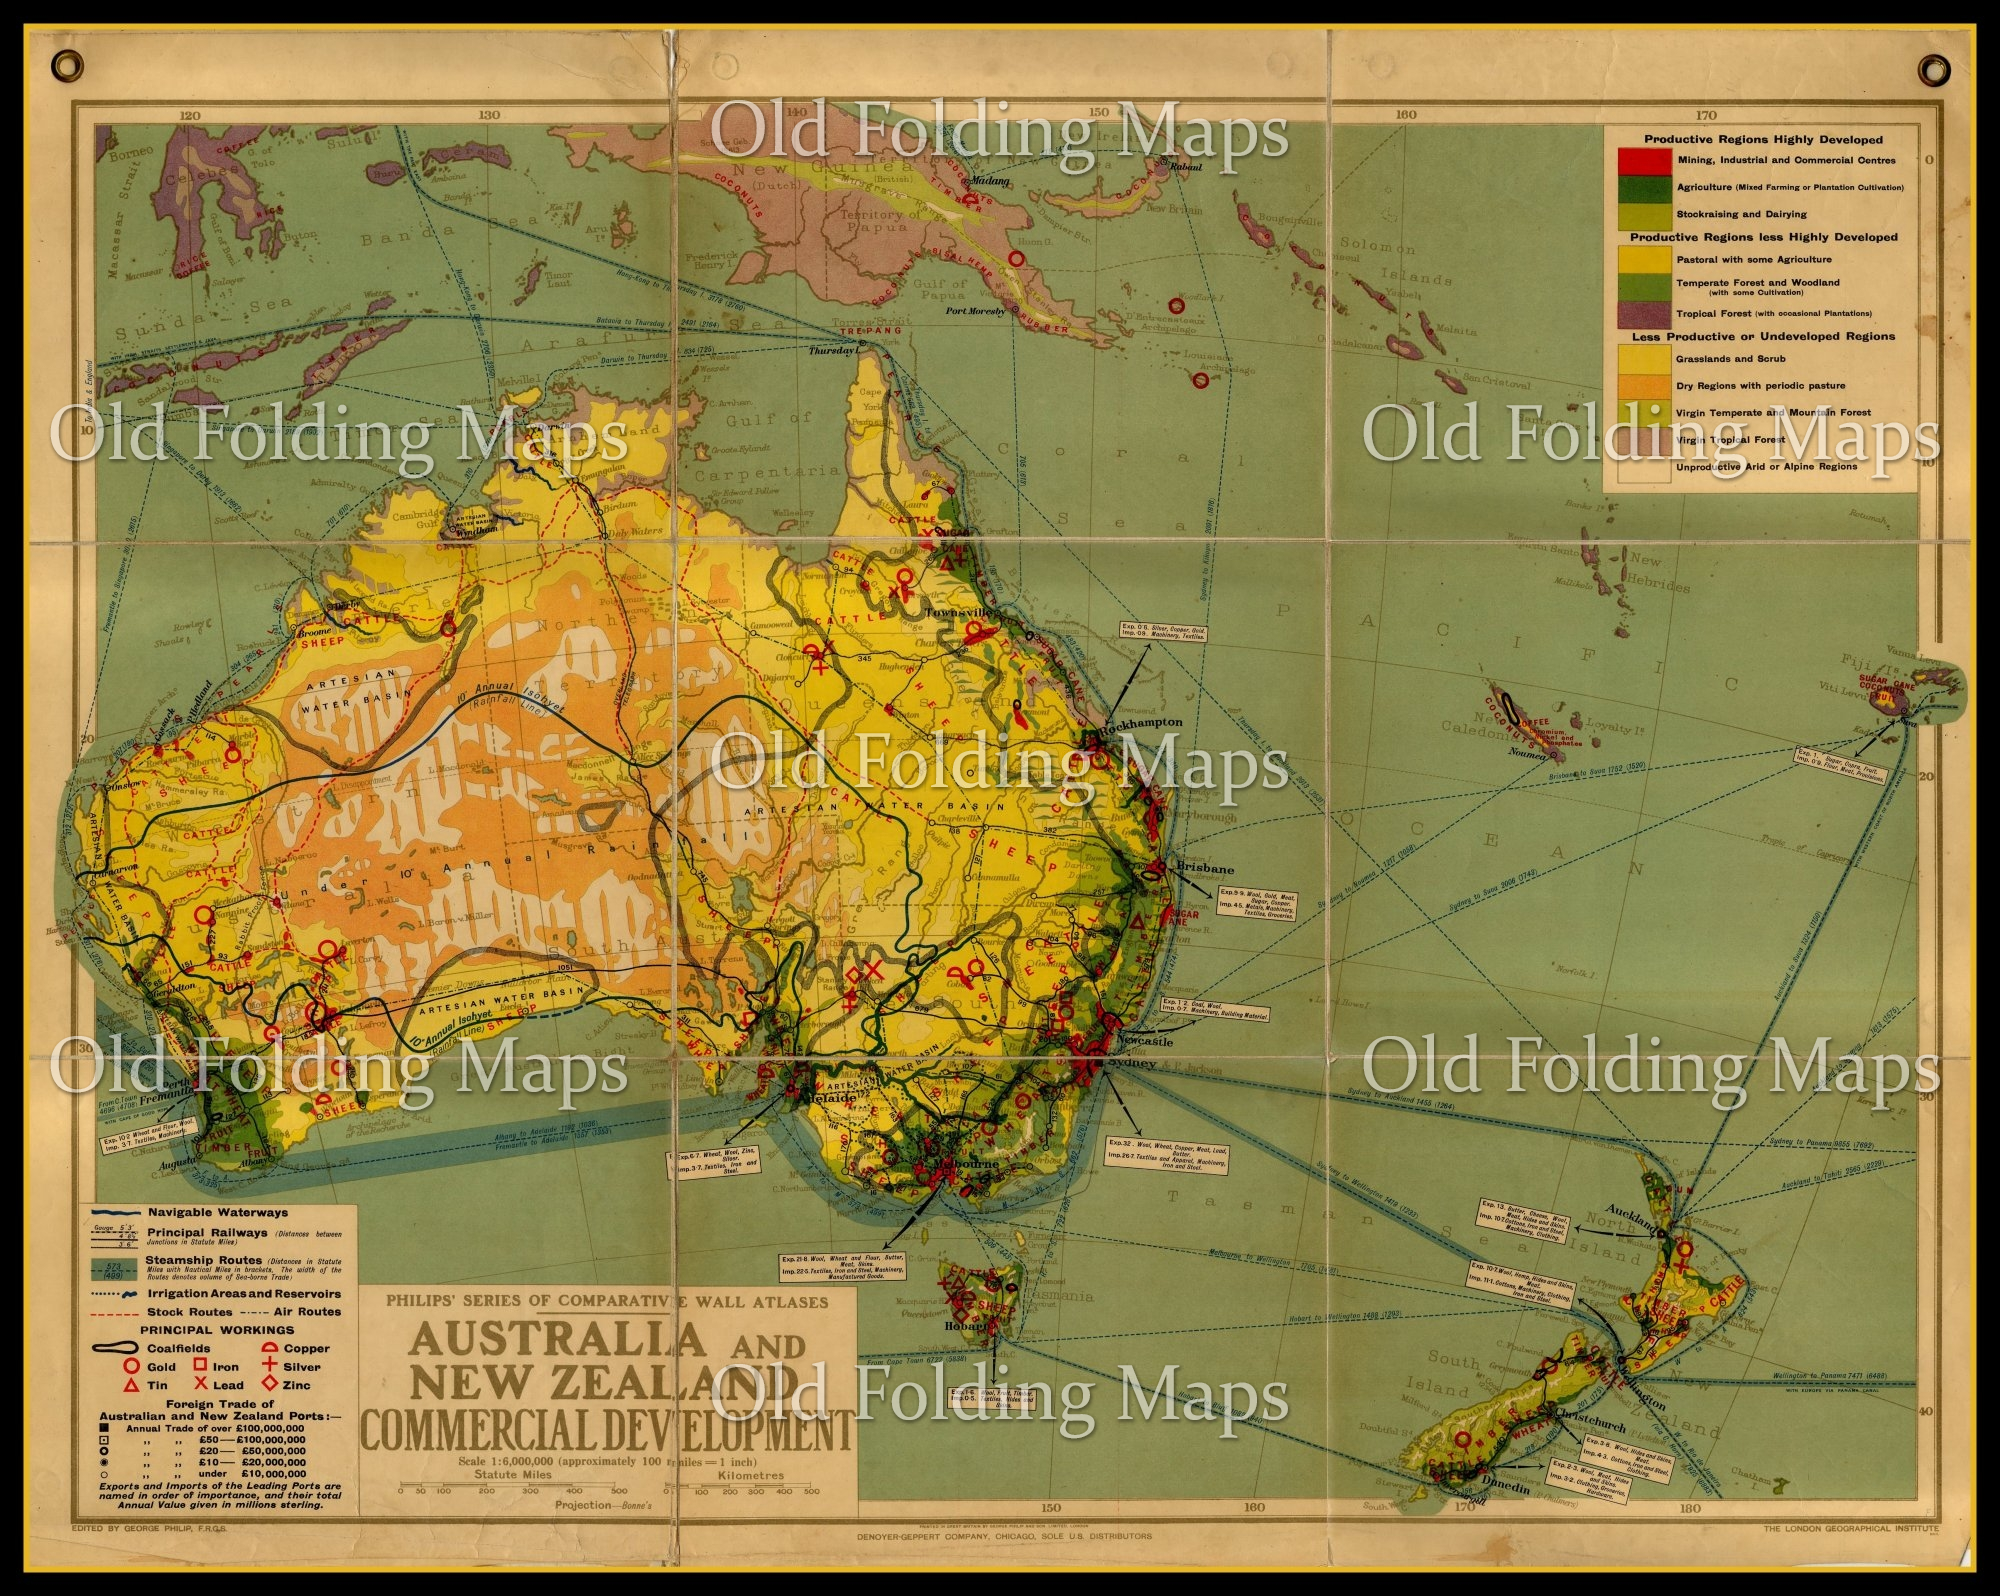 Australia Map New Zealand.An Antique Wall Map Of Australia New Zealand Commercial